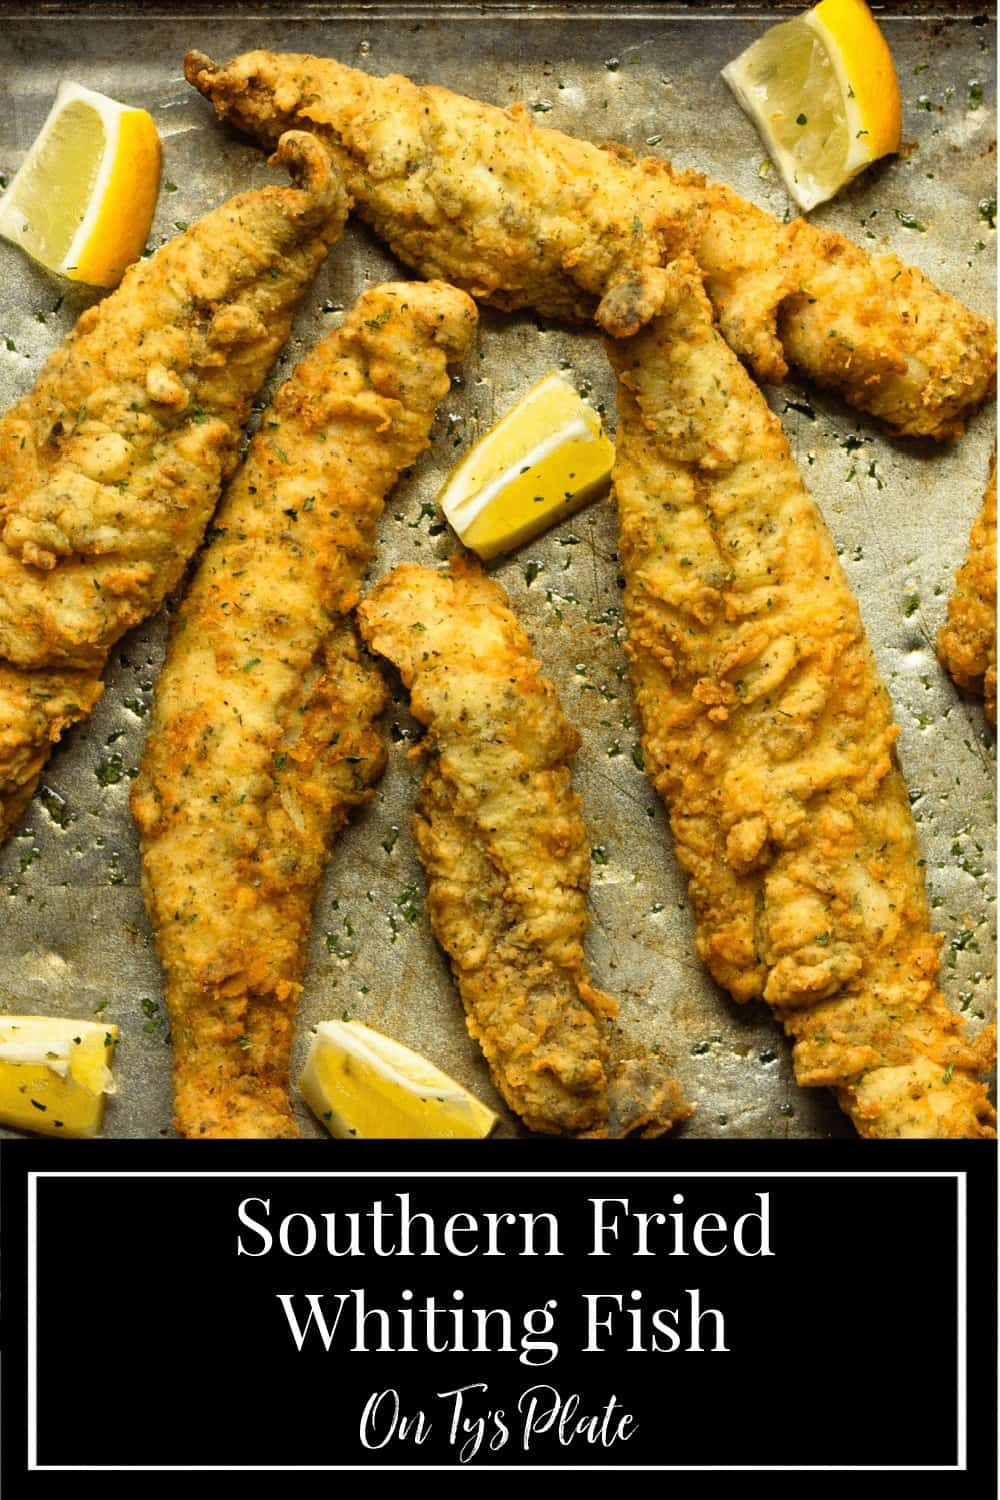 Southern Fried Whiting Fish